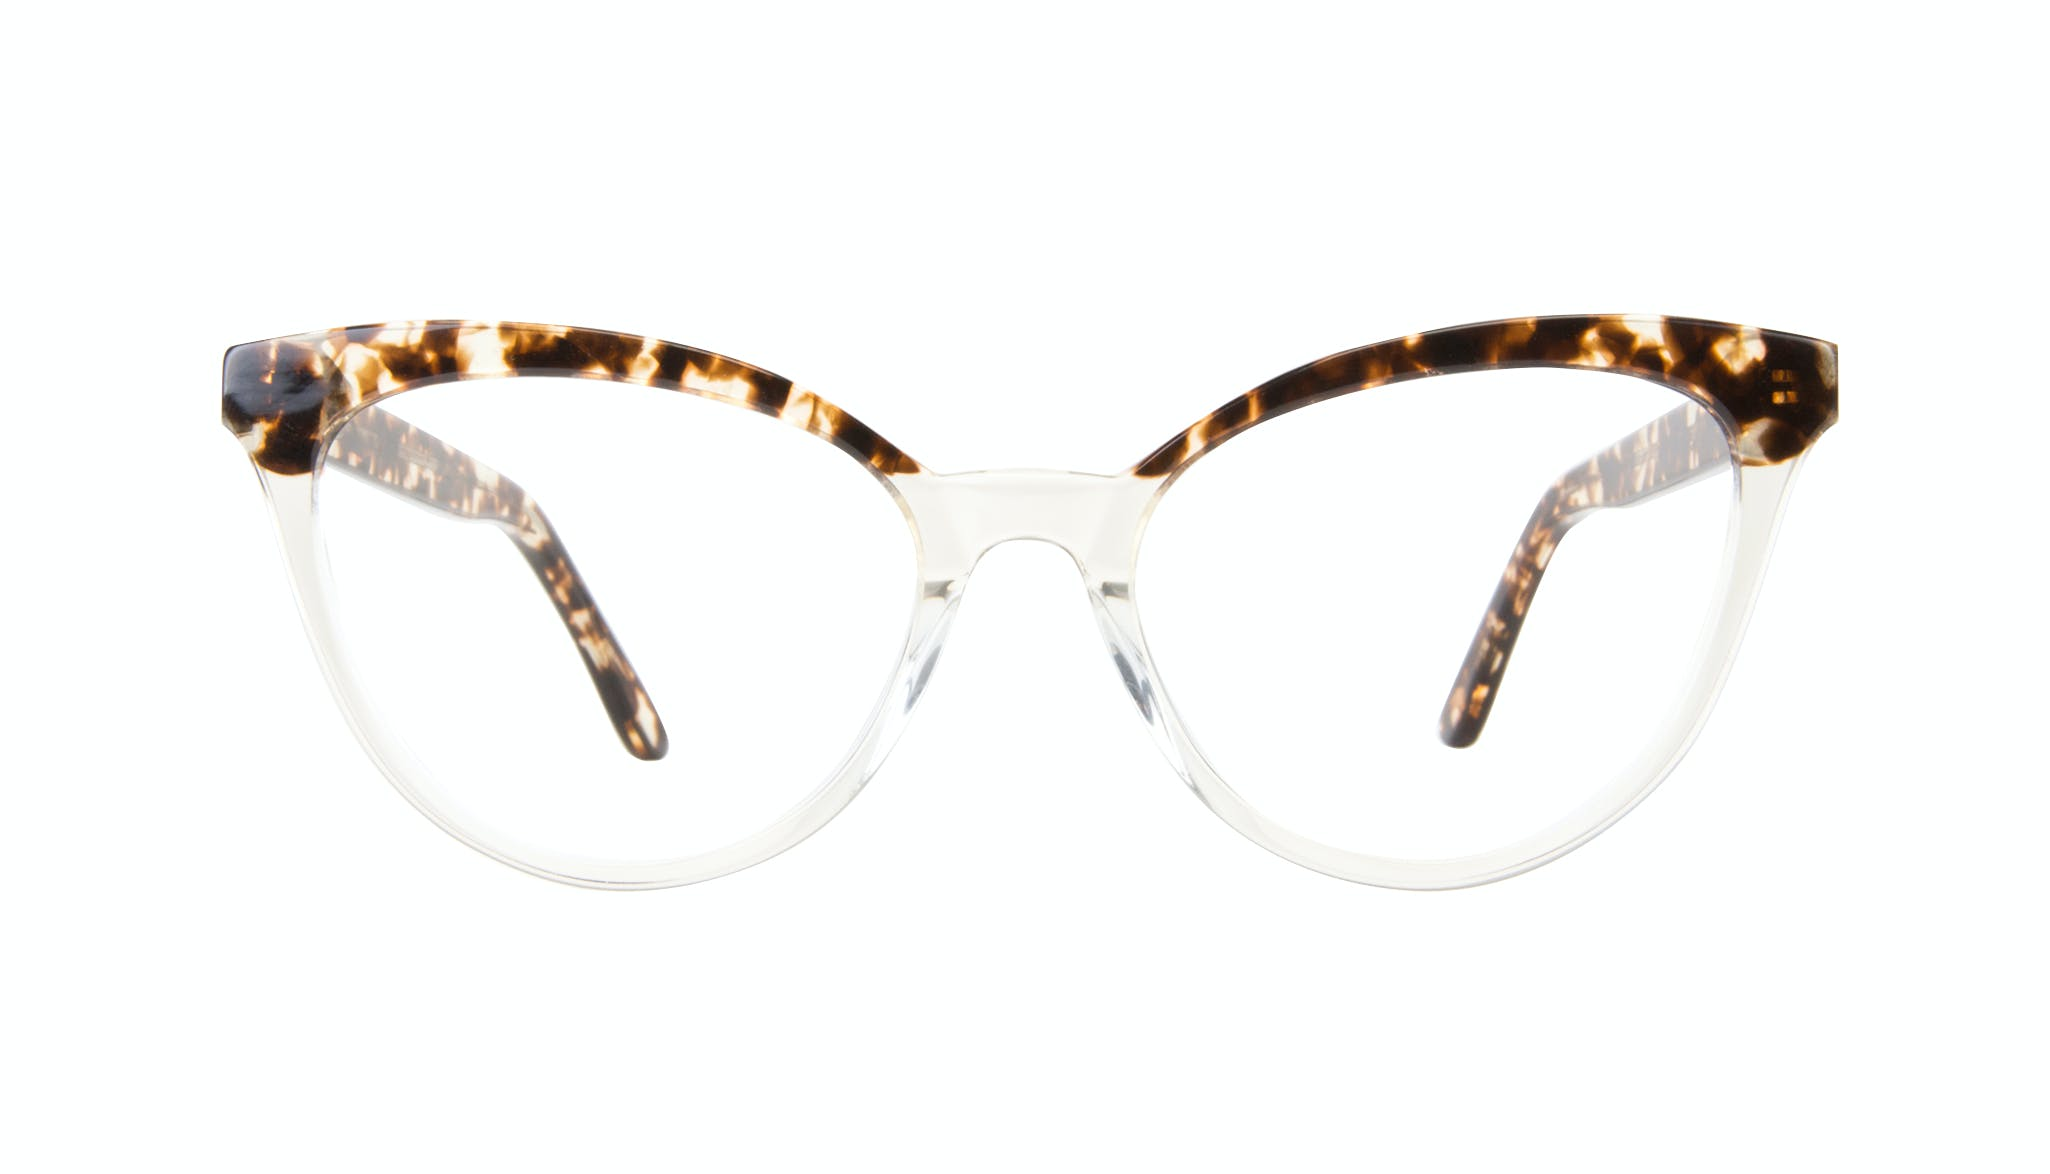 Affordable Fashion Glasses Cat Eye Daring Cateye Eyeglasses Women Reverie Blond Tortoise Front